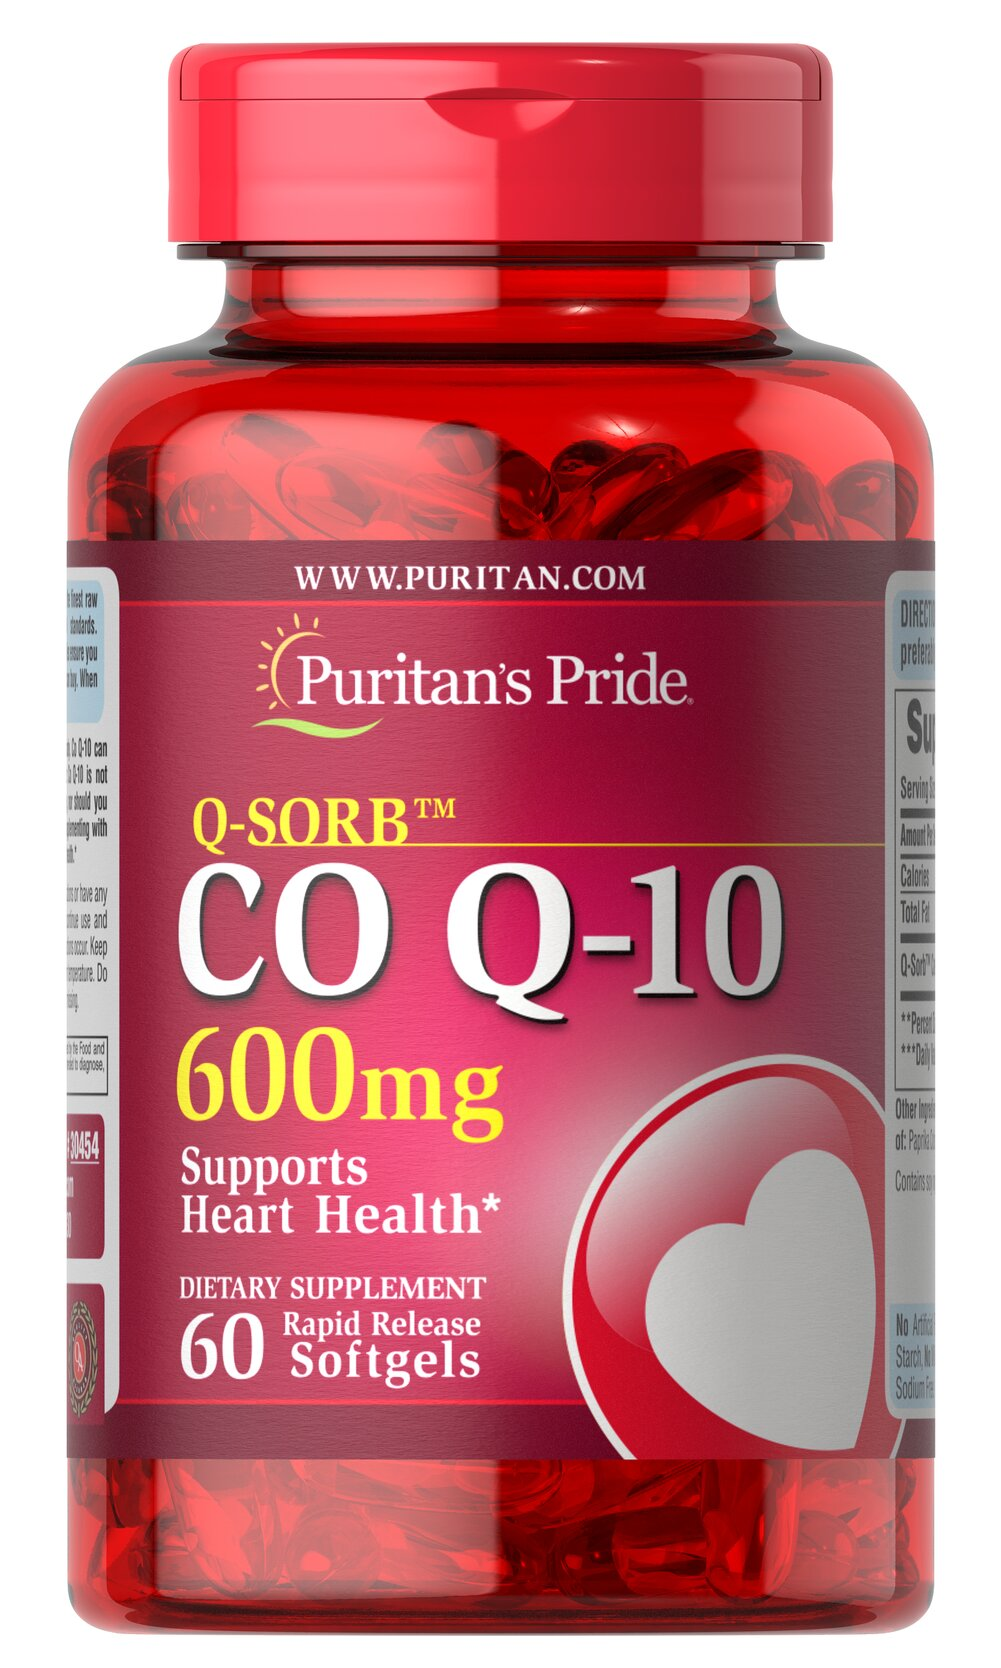 Q-SORB™ CO Q-10 600 mg <p>Puritan's Pride Q-Sorb™ Co Q-10 (coq10) provides antioxidant support for your heart and ensures potency and purity.**</p><p>Our Q-Sorb™ Co Q-10 is hermetically sealed in rapid release softgels to provide superior absorption</p><p>Contributes to your heart and cardiovascular wellness**</p><p>Helps support blood pressure levels already within a normal range**</p><p>Promotes energy production within your heart, brain, a